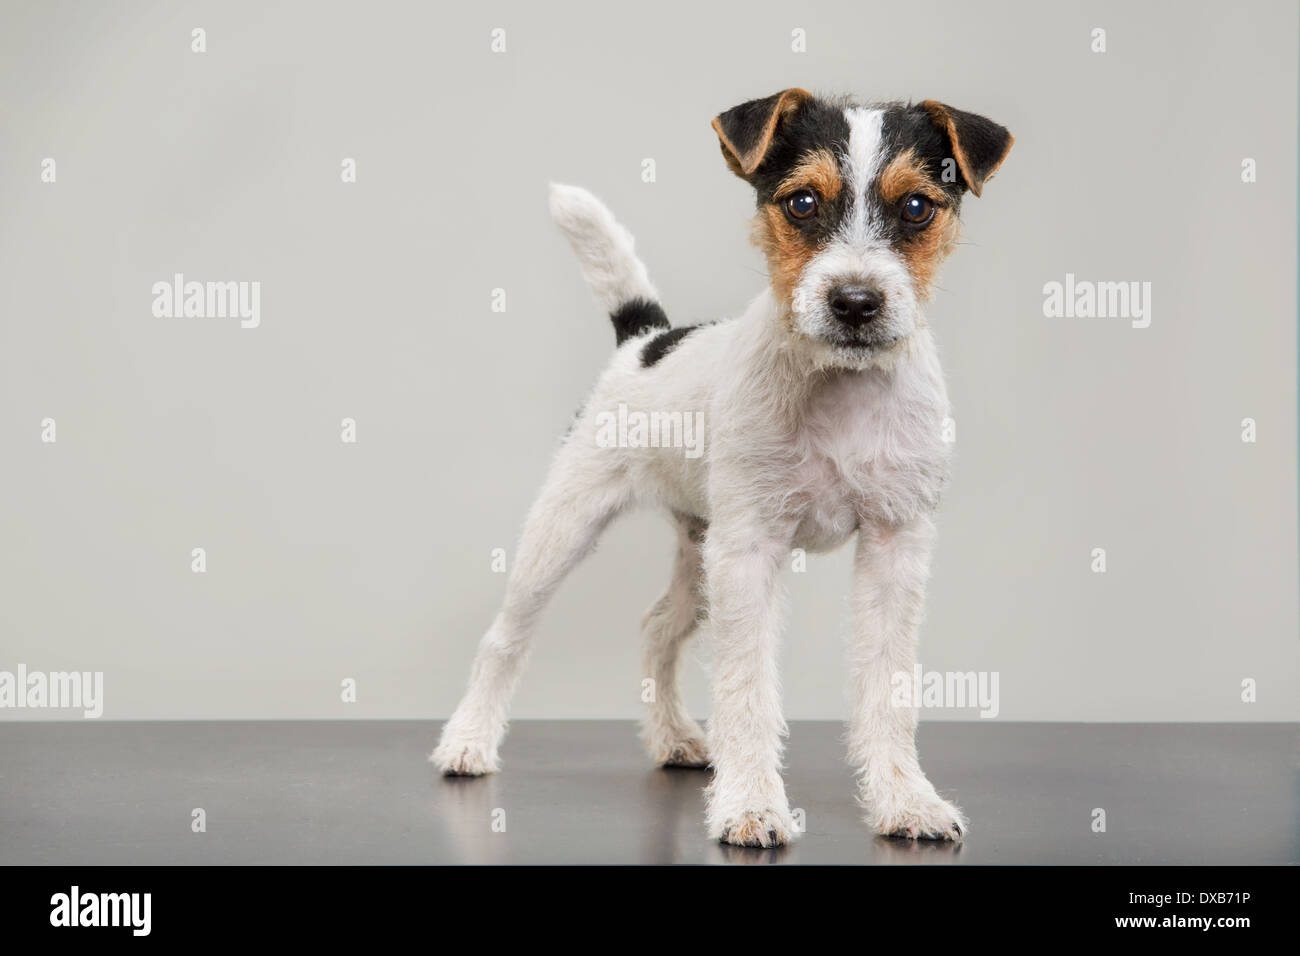 Studio portrait of Jack Russell Terrier puppy standing, staring at camera. - Stock Image